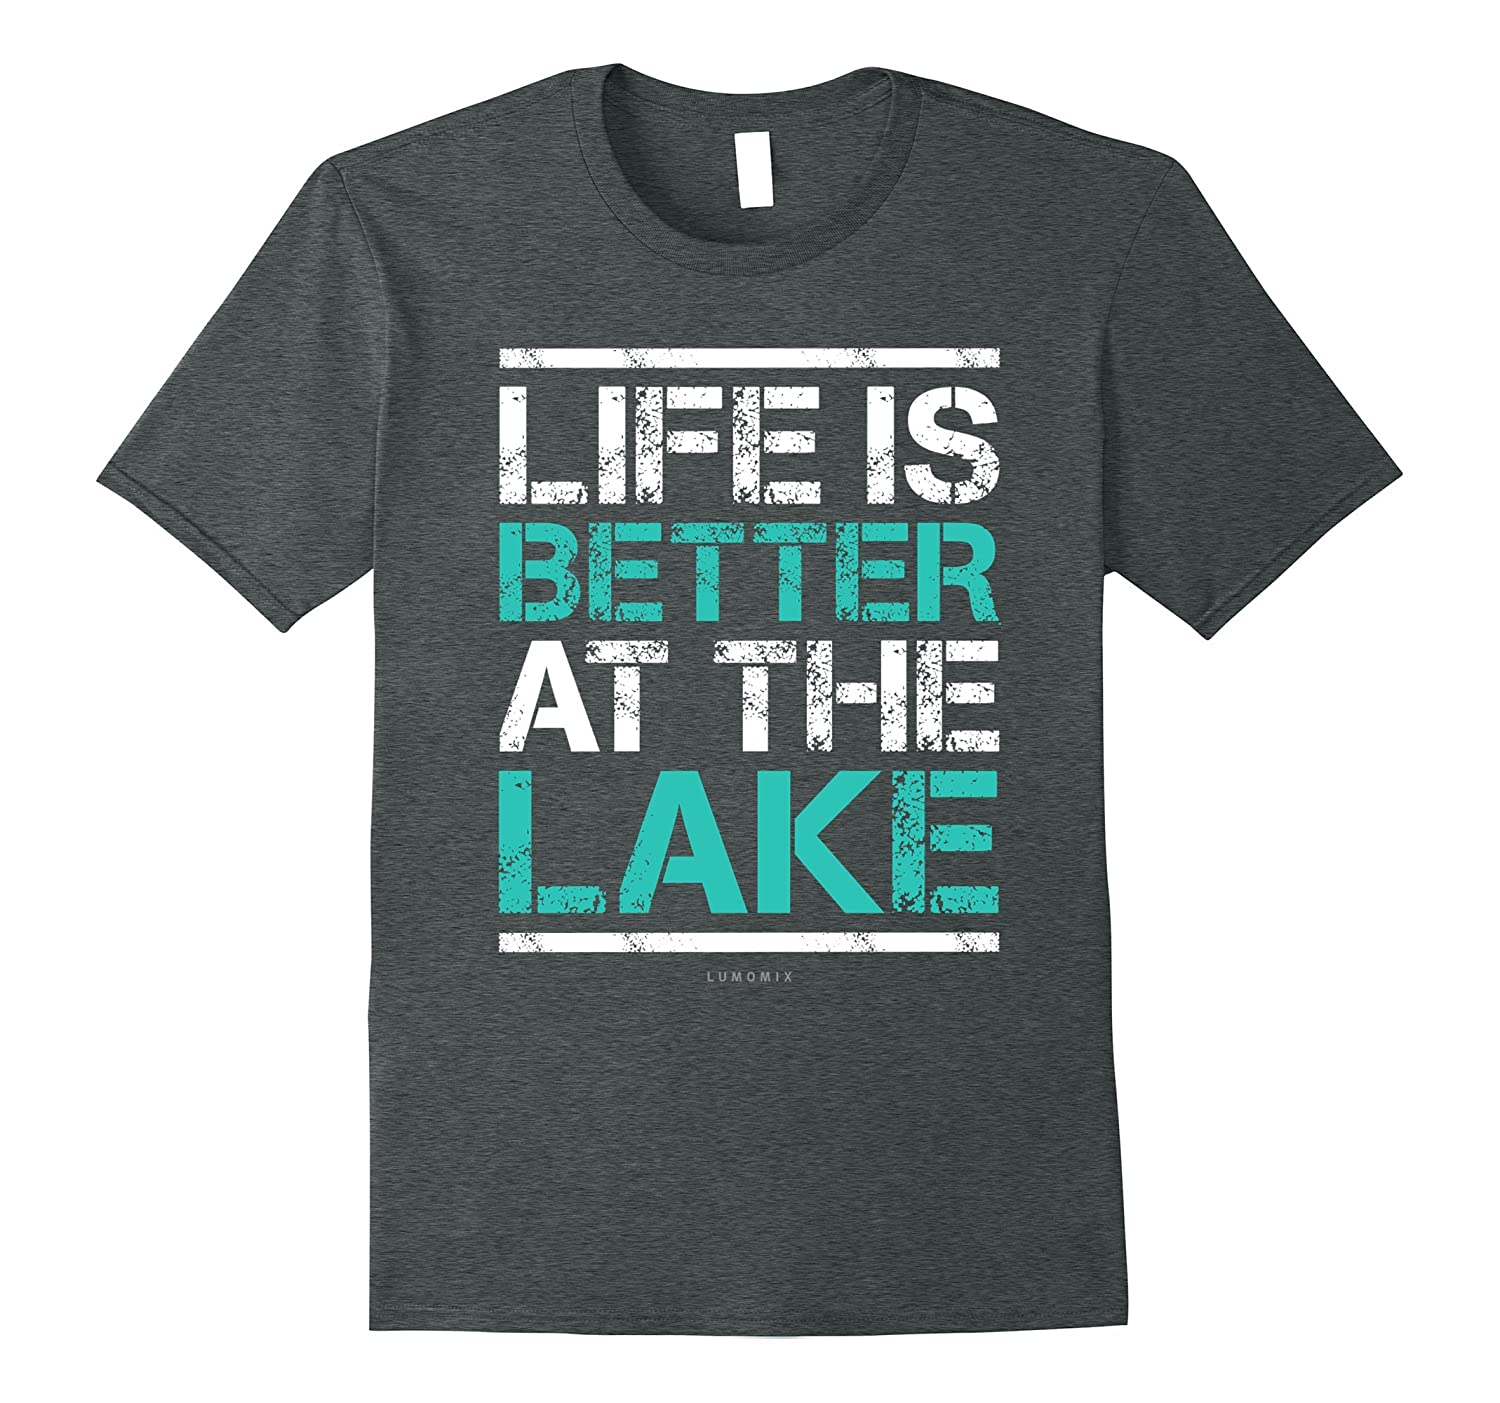 Pin on Gifts For Boaters   Funny Boating Shirts   Lake T